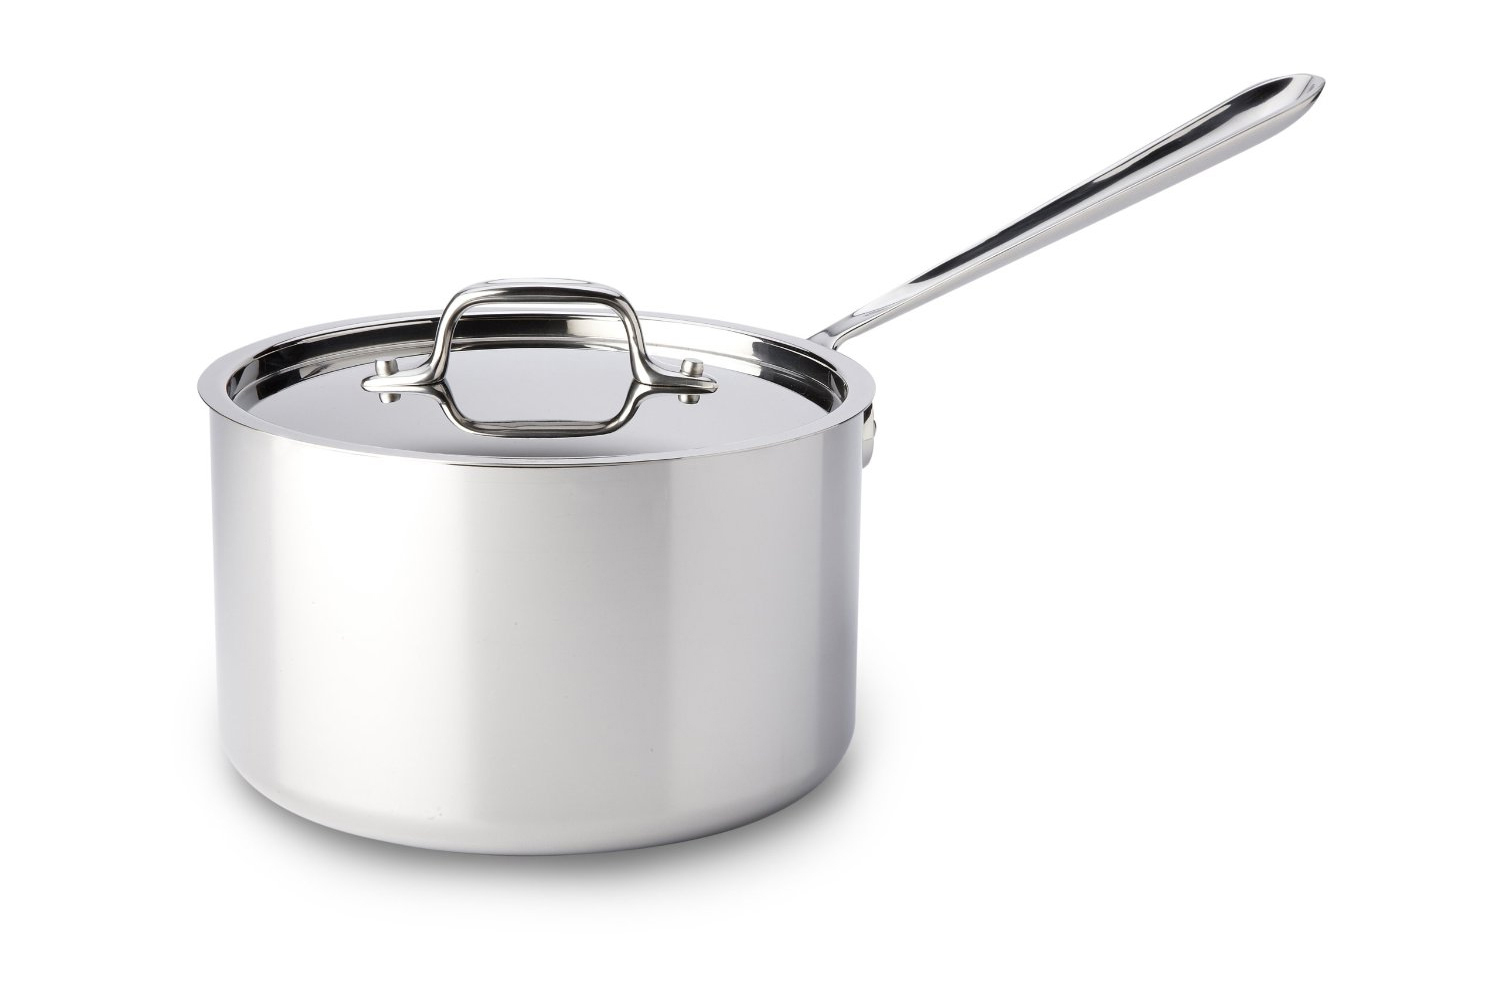 All-Clad d3 Tri-Ply Stainless Steel 3 1/2 qt. Sauce Pan w/Lid